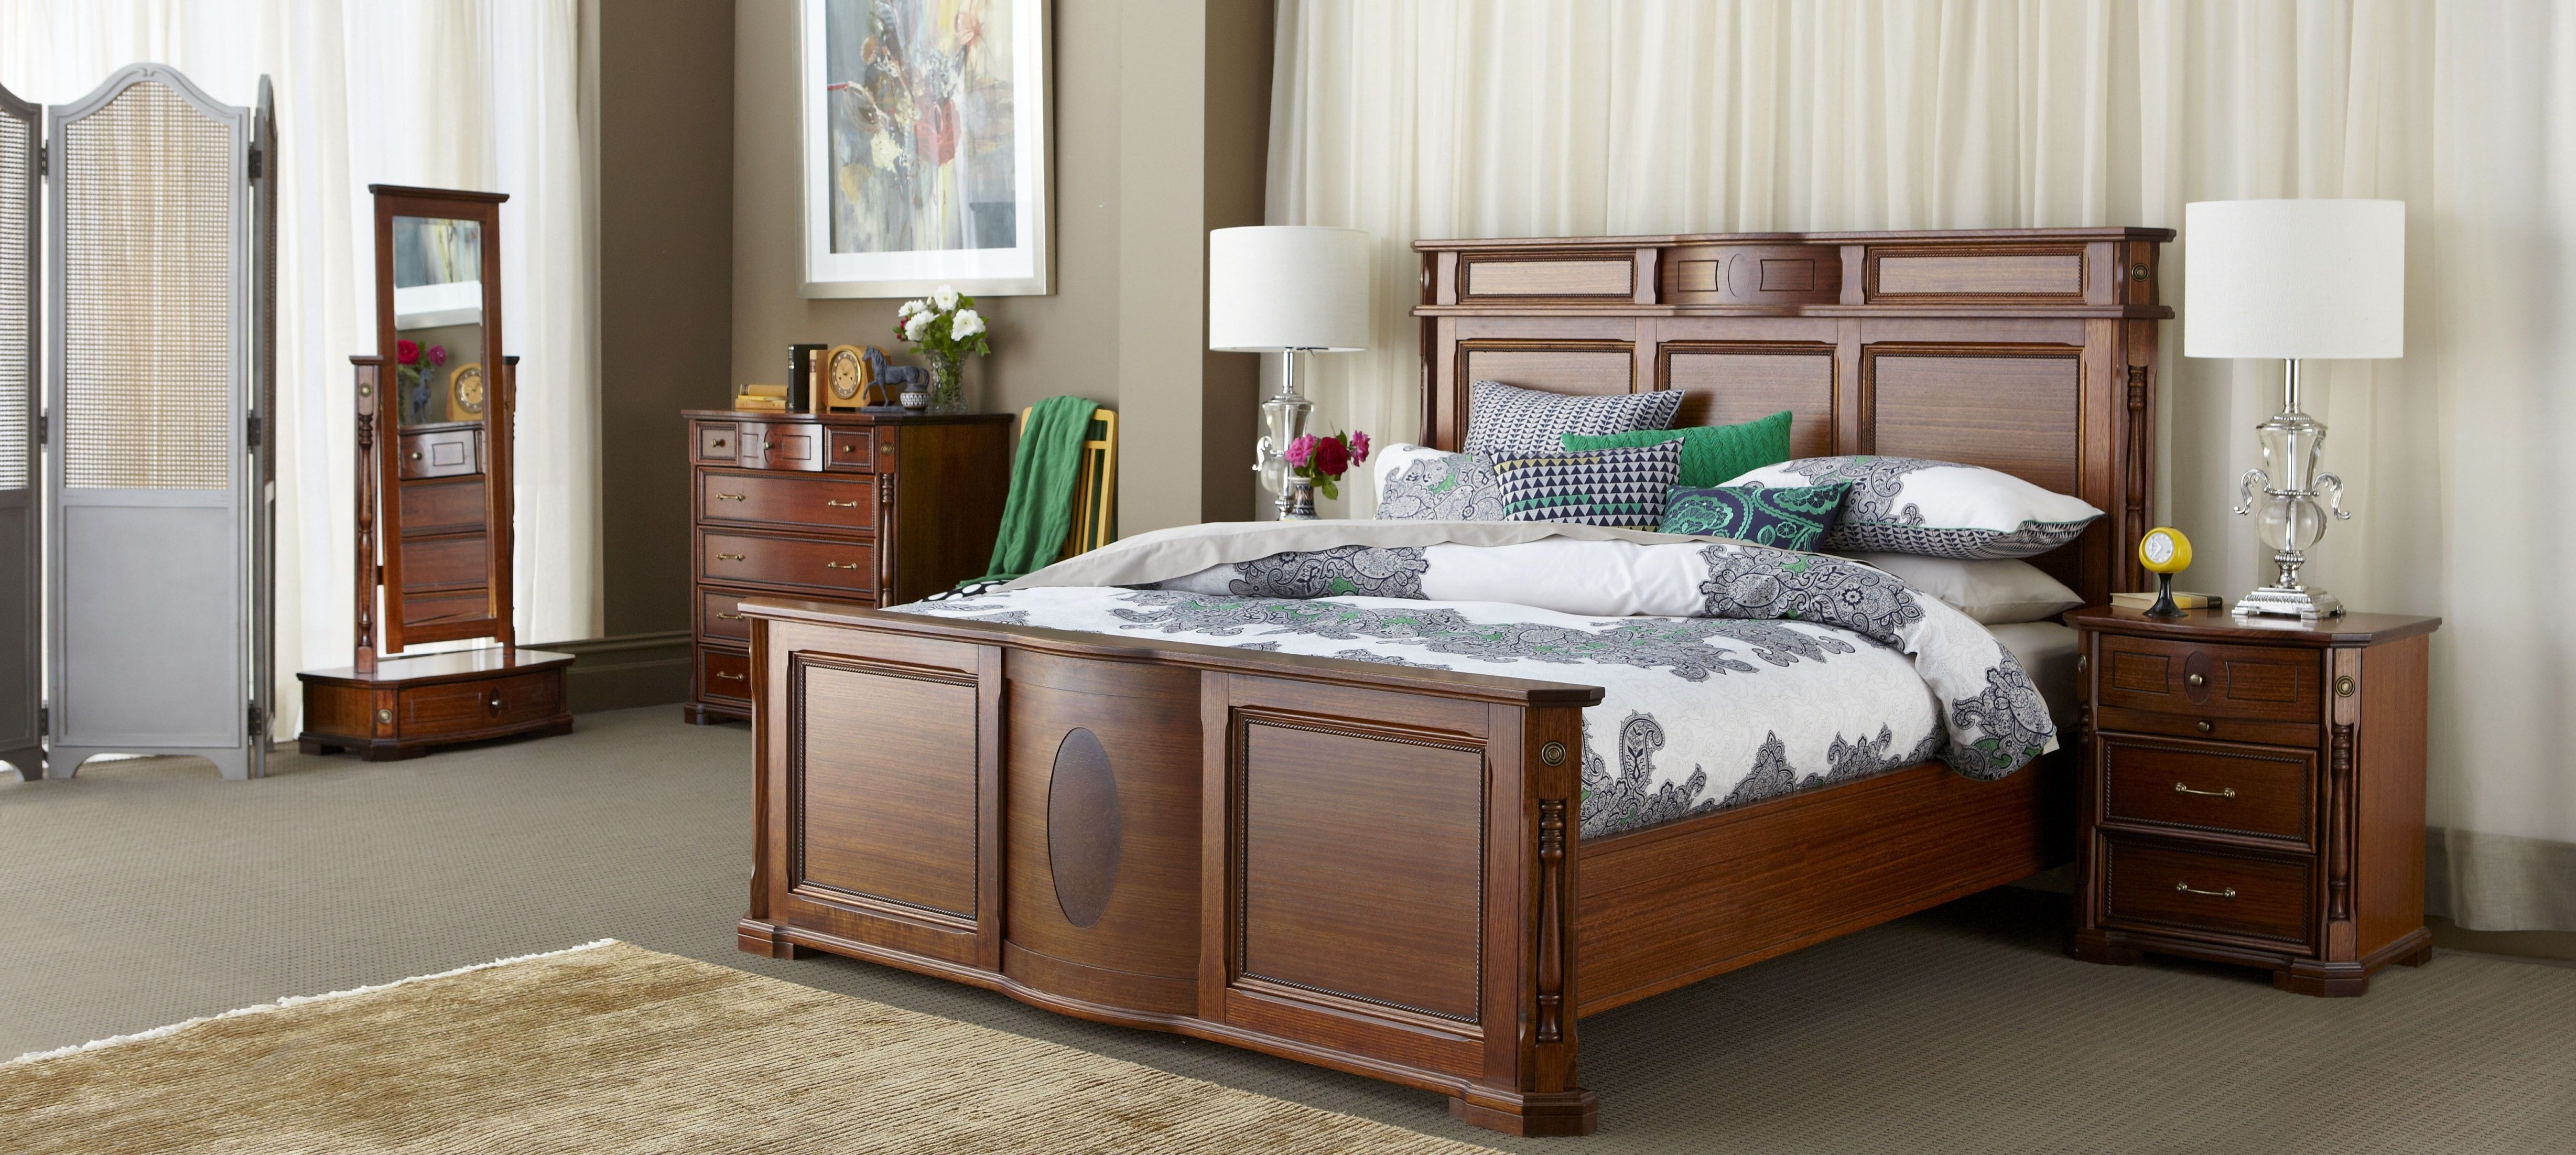 Forty Winks Malvern Classic Ornate Warm Toned Wood Grain Bedroom Furniture  Suite With Emerald Green And